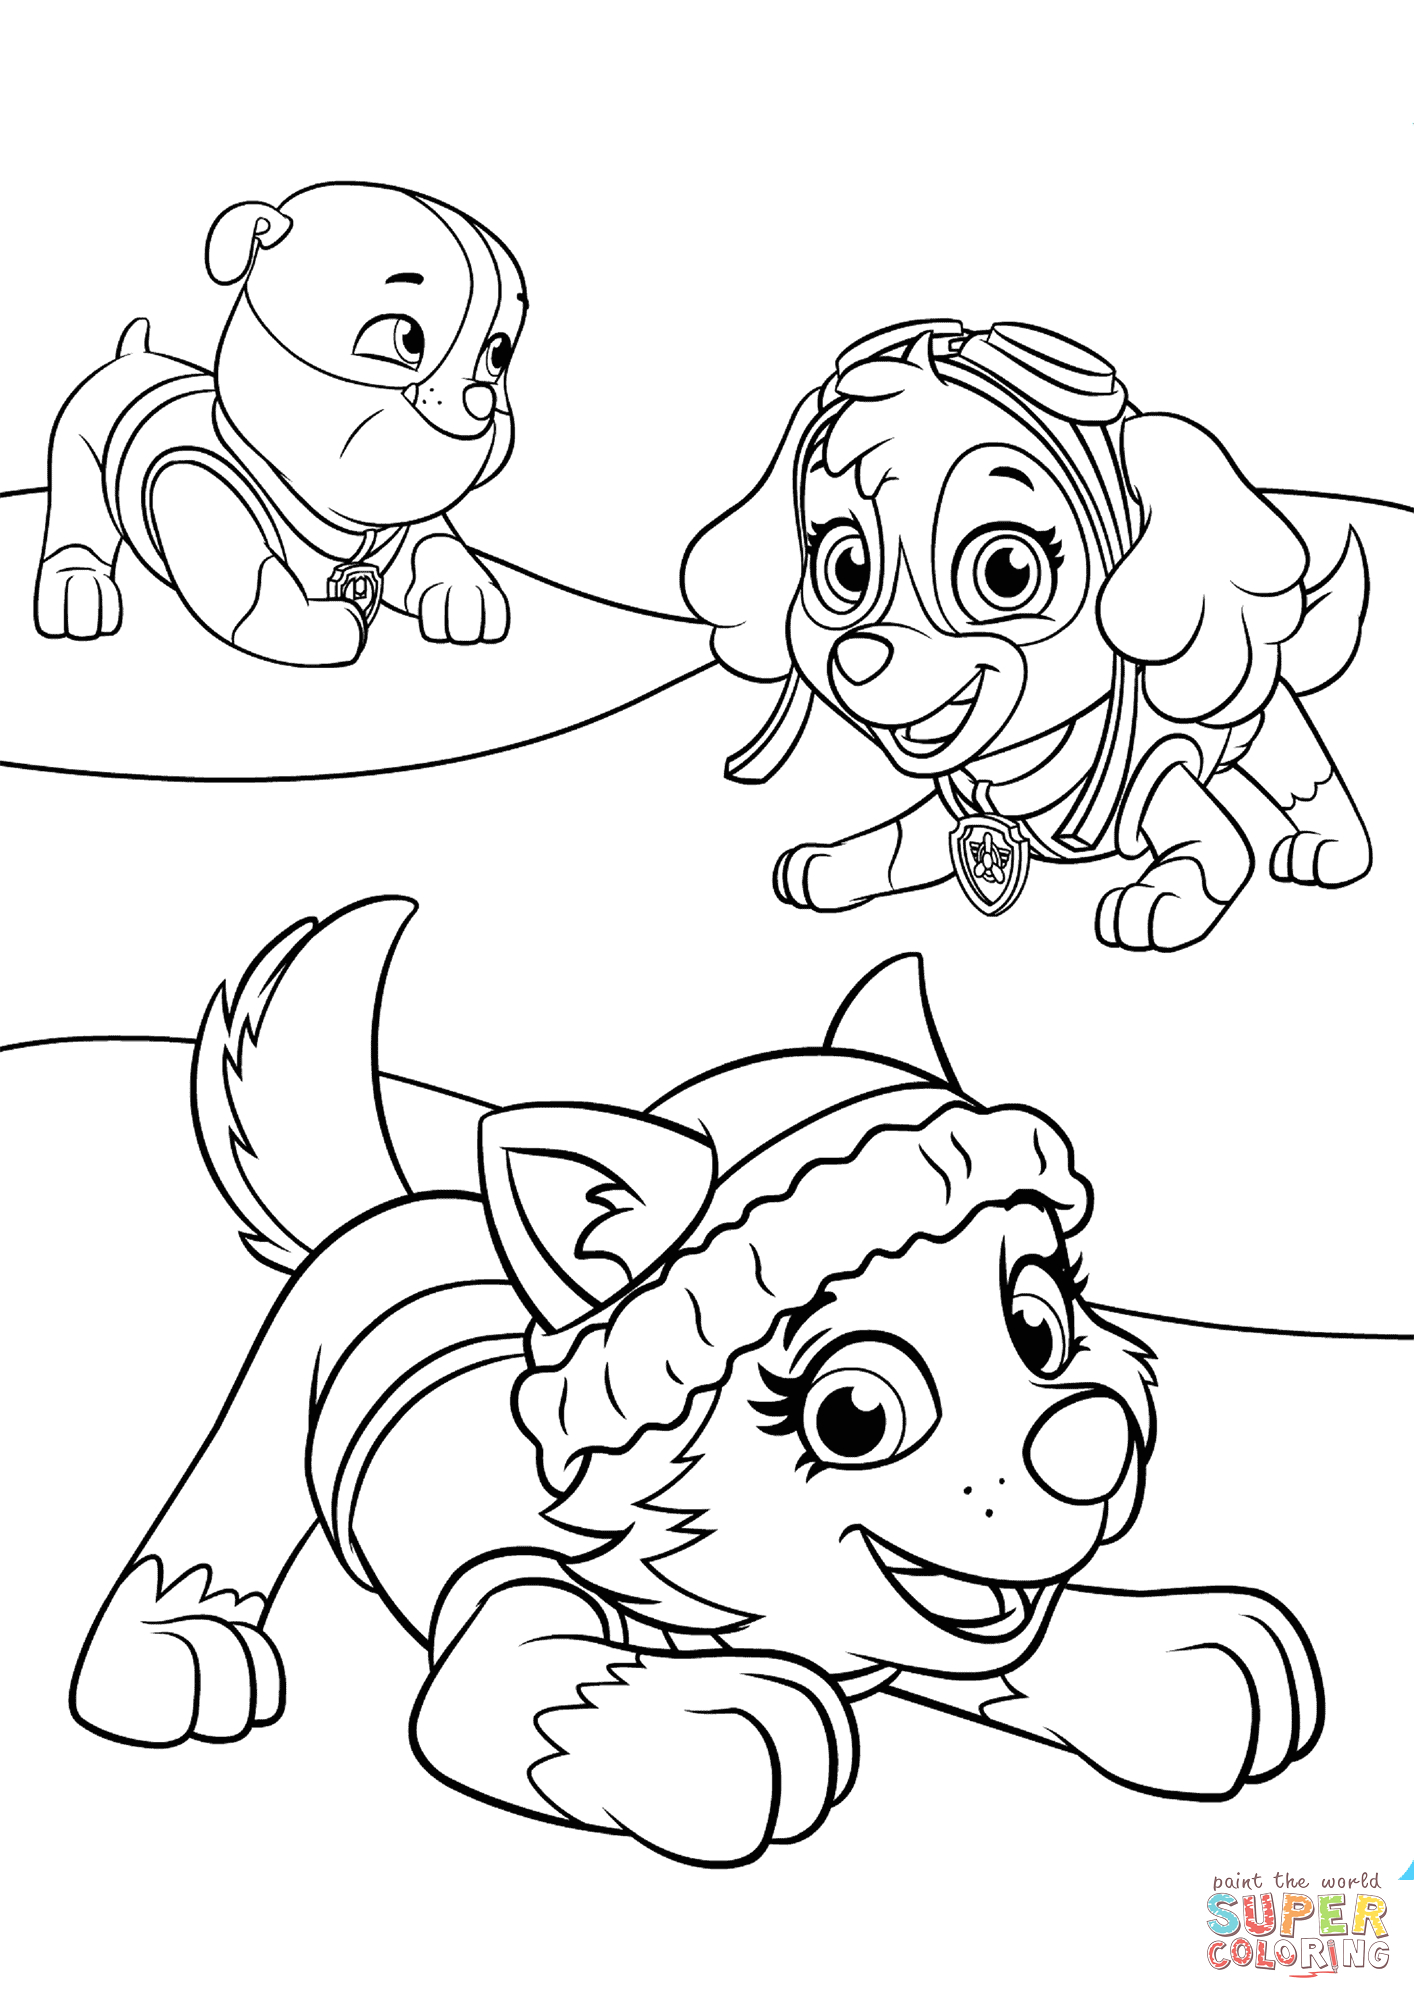 paw patrol everest coloring pages to print sketch templates